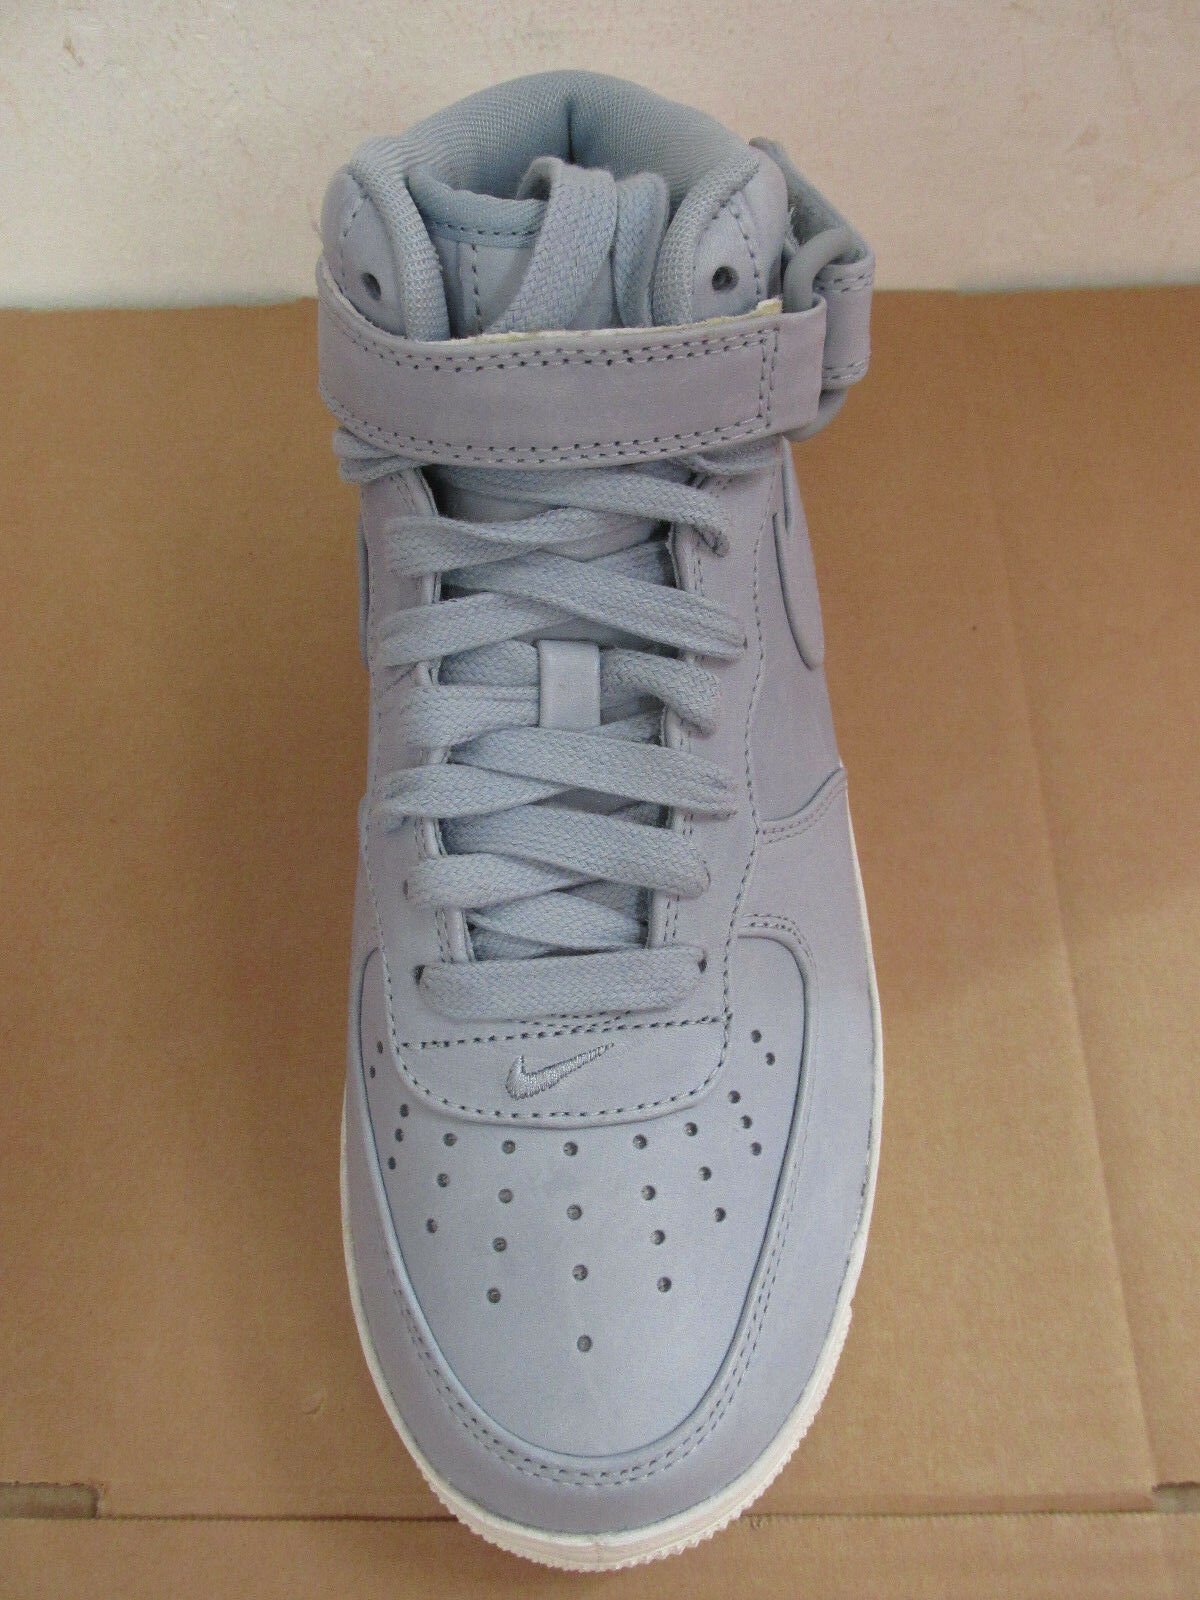 nikelab air running force 1 mid mens running air trainers 905619 400 sneakers CLEARANCE b6206c